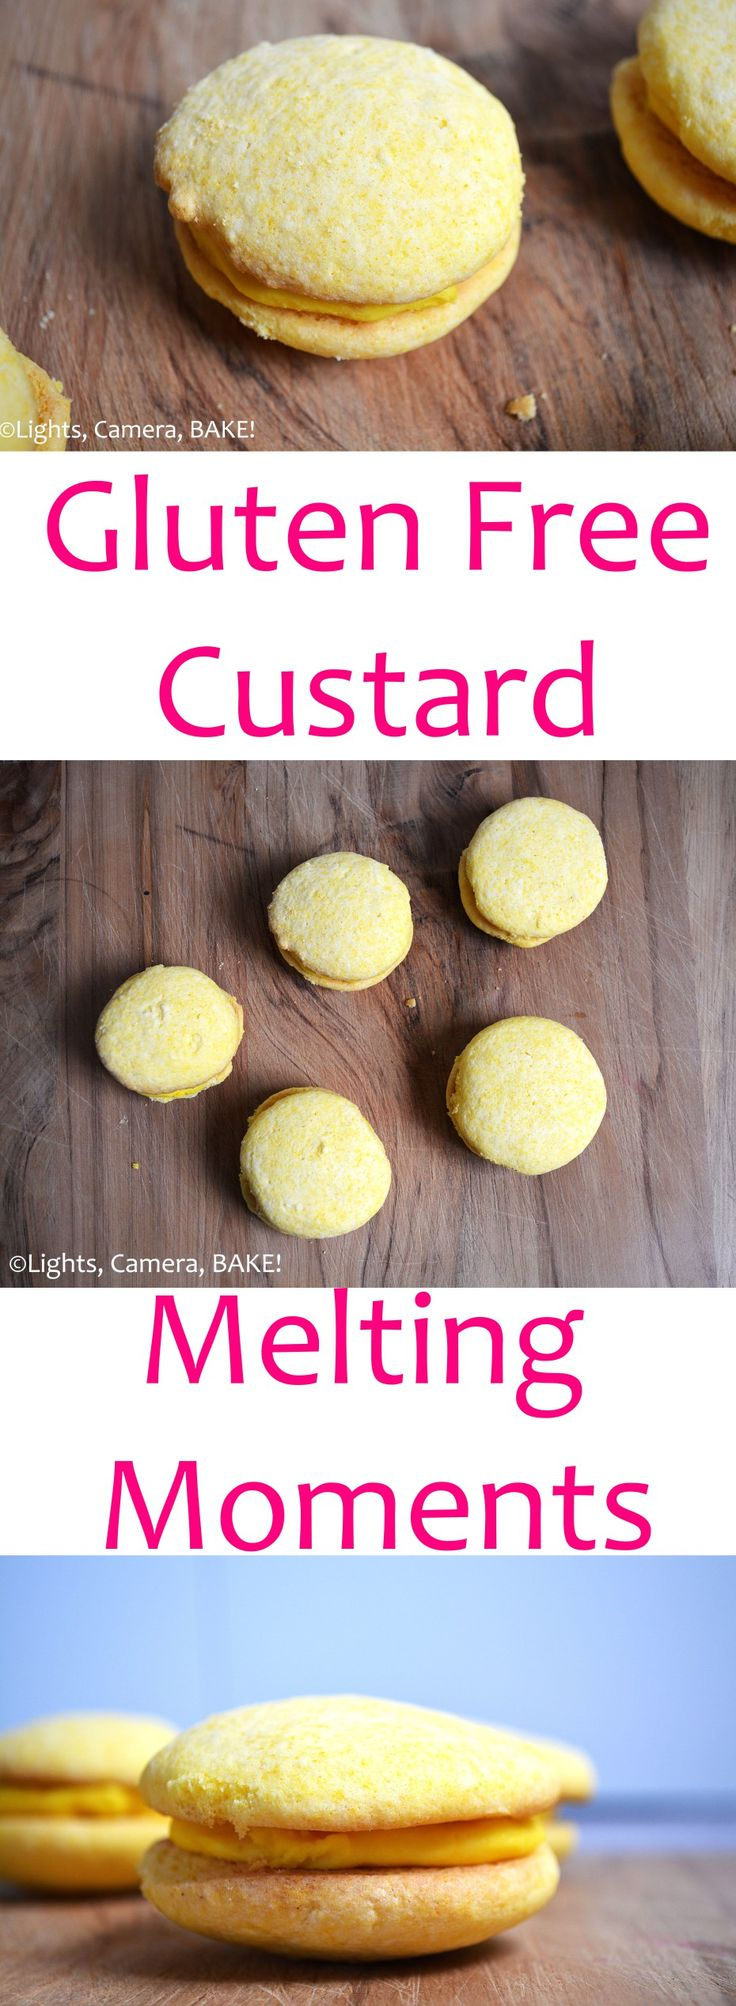 Gluten Free Custard Melting Moments. These are gluten free melt-in-the-mouth shortbread-like custard cookies with a custard buttercream filling. These are seriously divine. They melt as soon as they touch your tongue. A definite must try. #custardmeltingmoments #custardbuttercream #mltingmomentsrecipe #glutenfreecookies